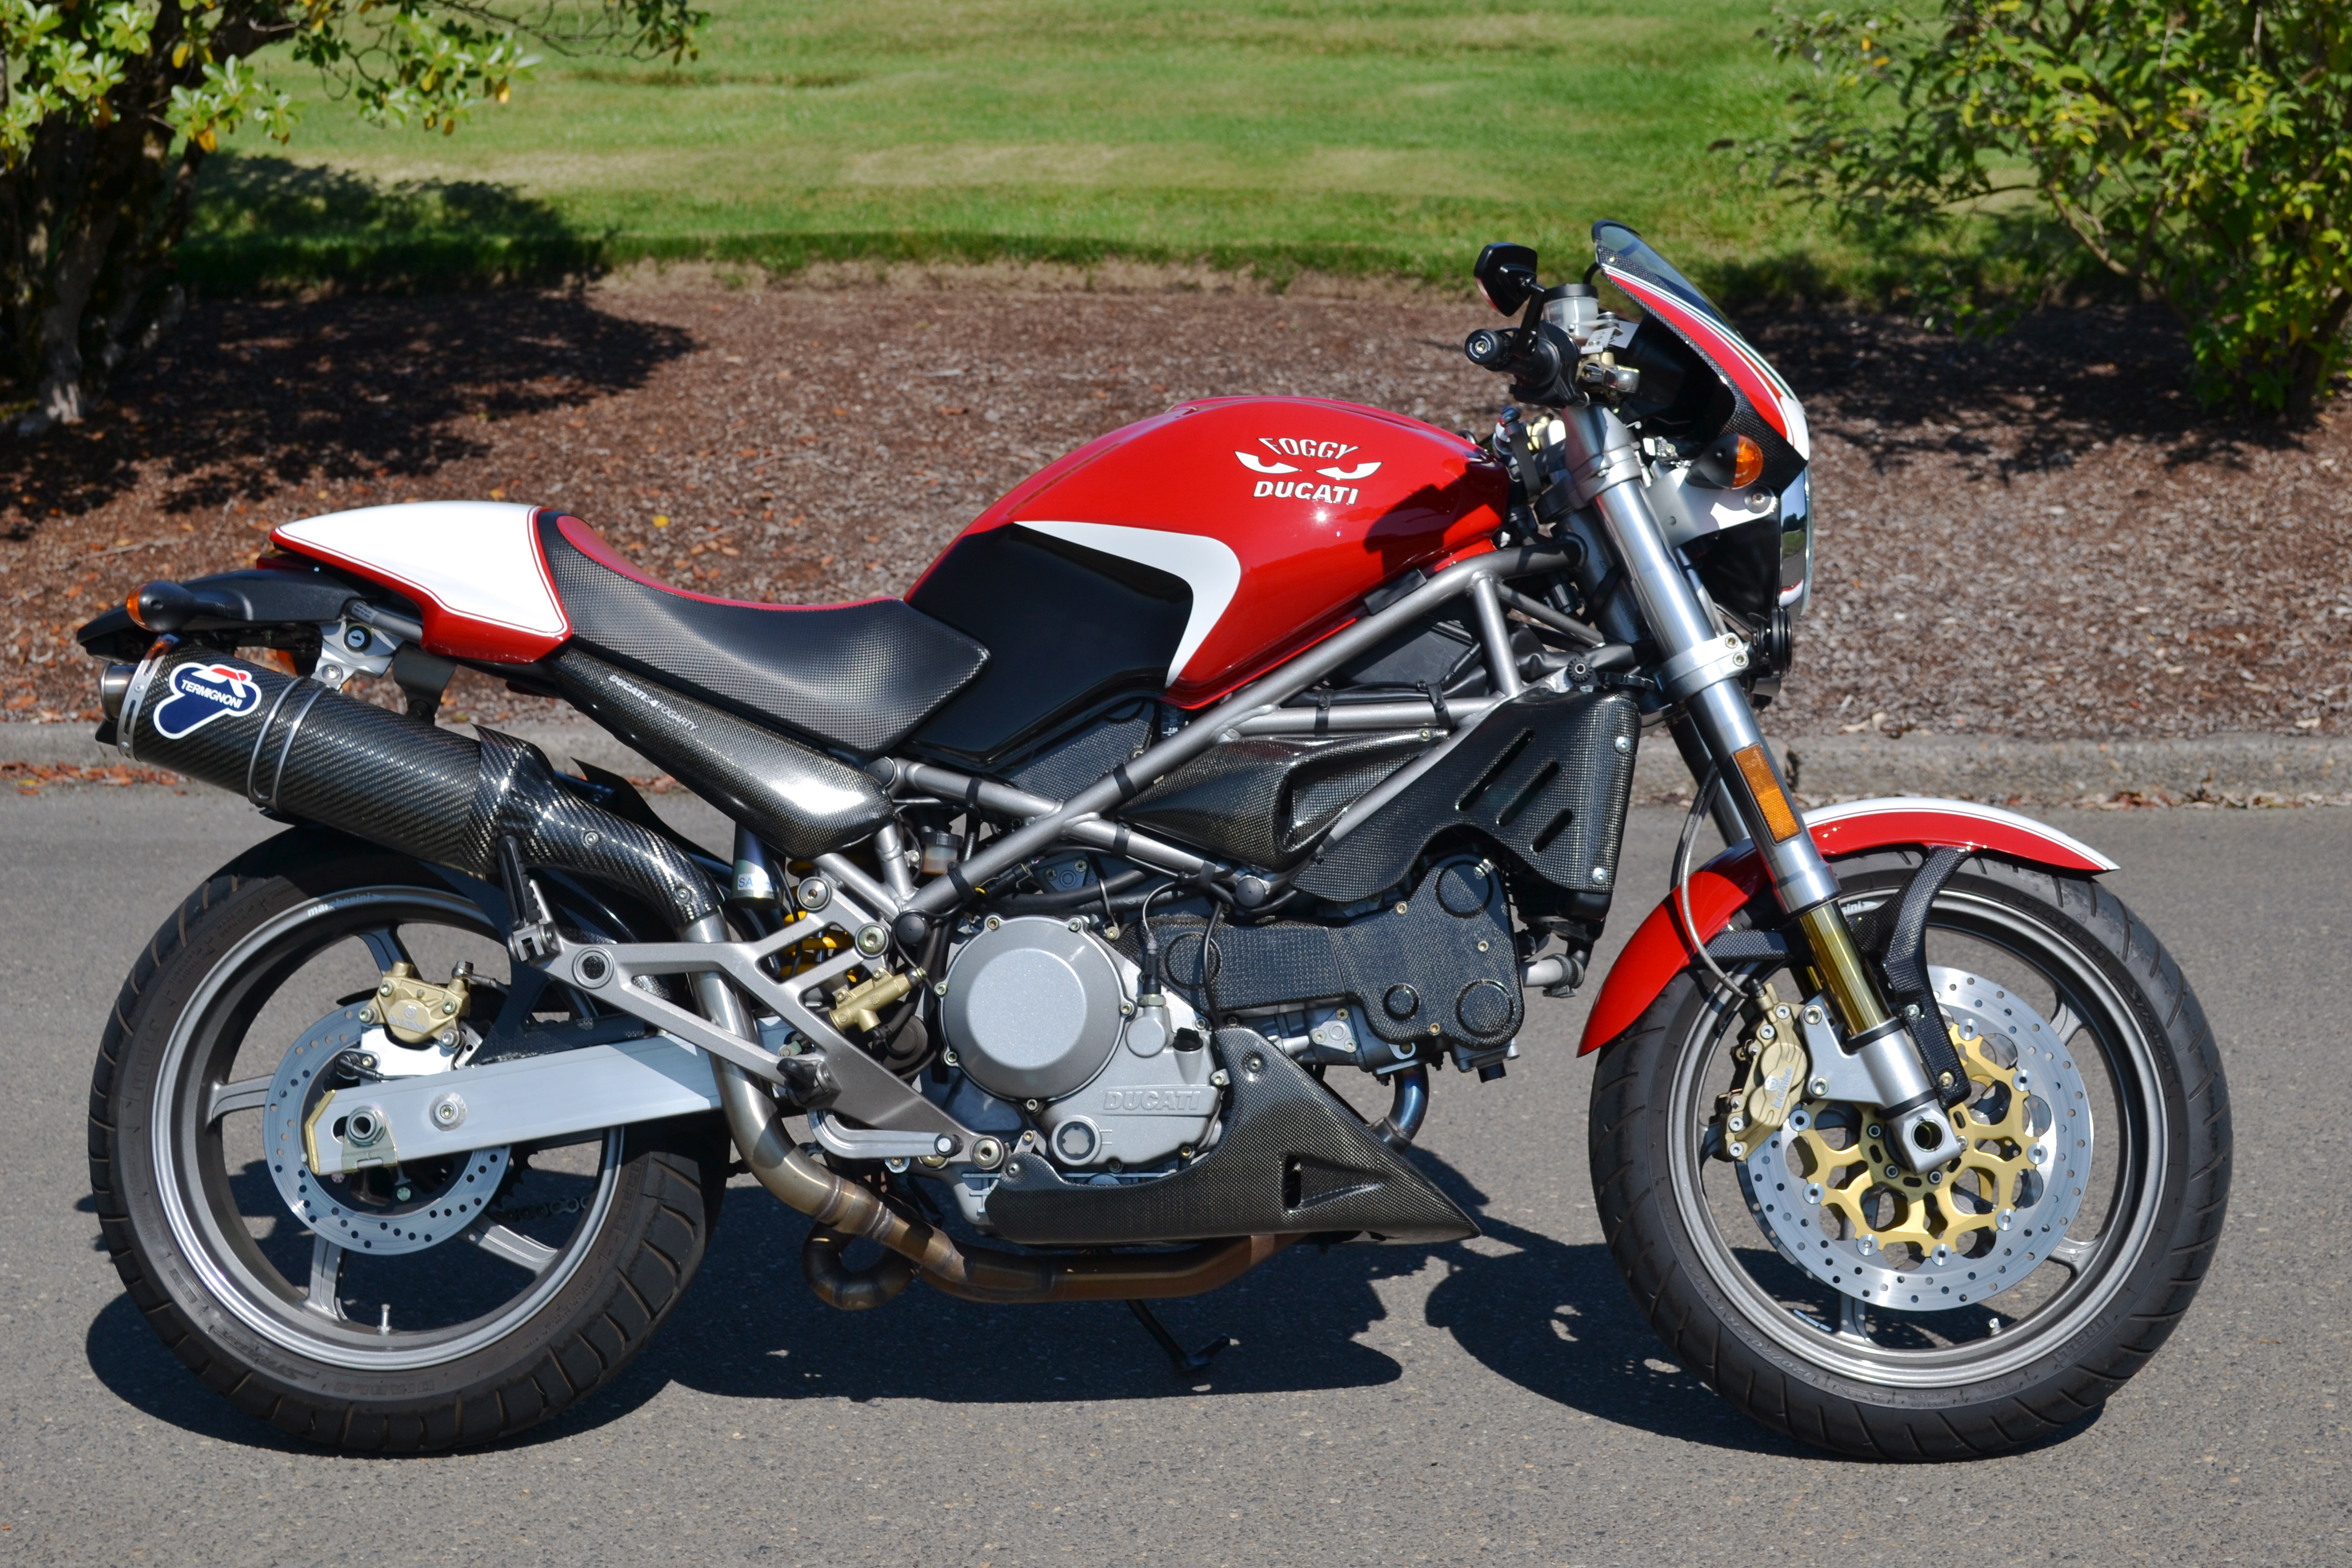 Ducati Monster 900/Monster 900 Dark/Monster 900 City/Monster 900 Cromo/Monster 900 Special 2000 #3